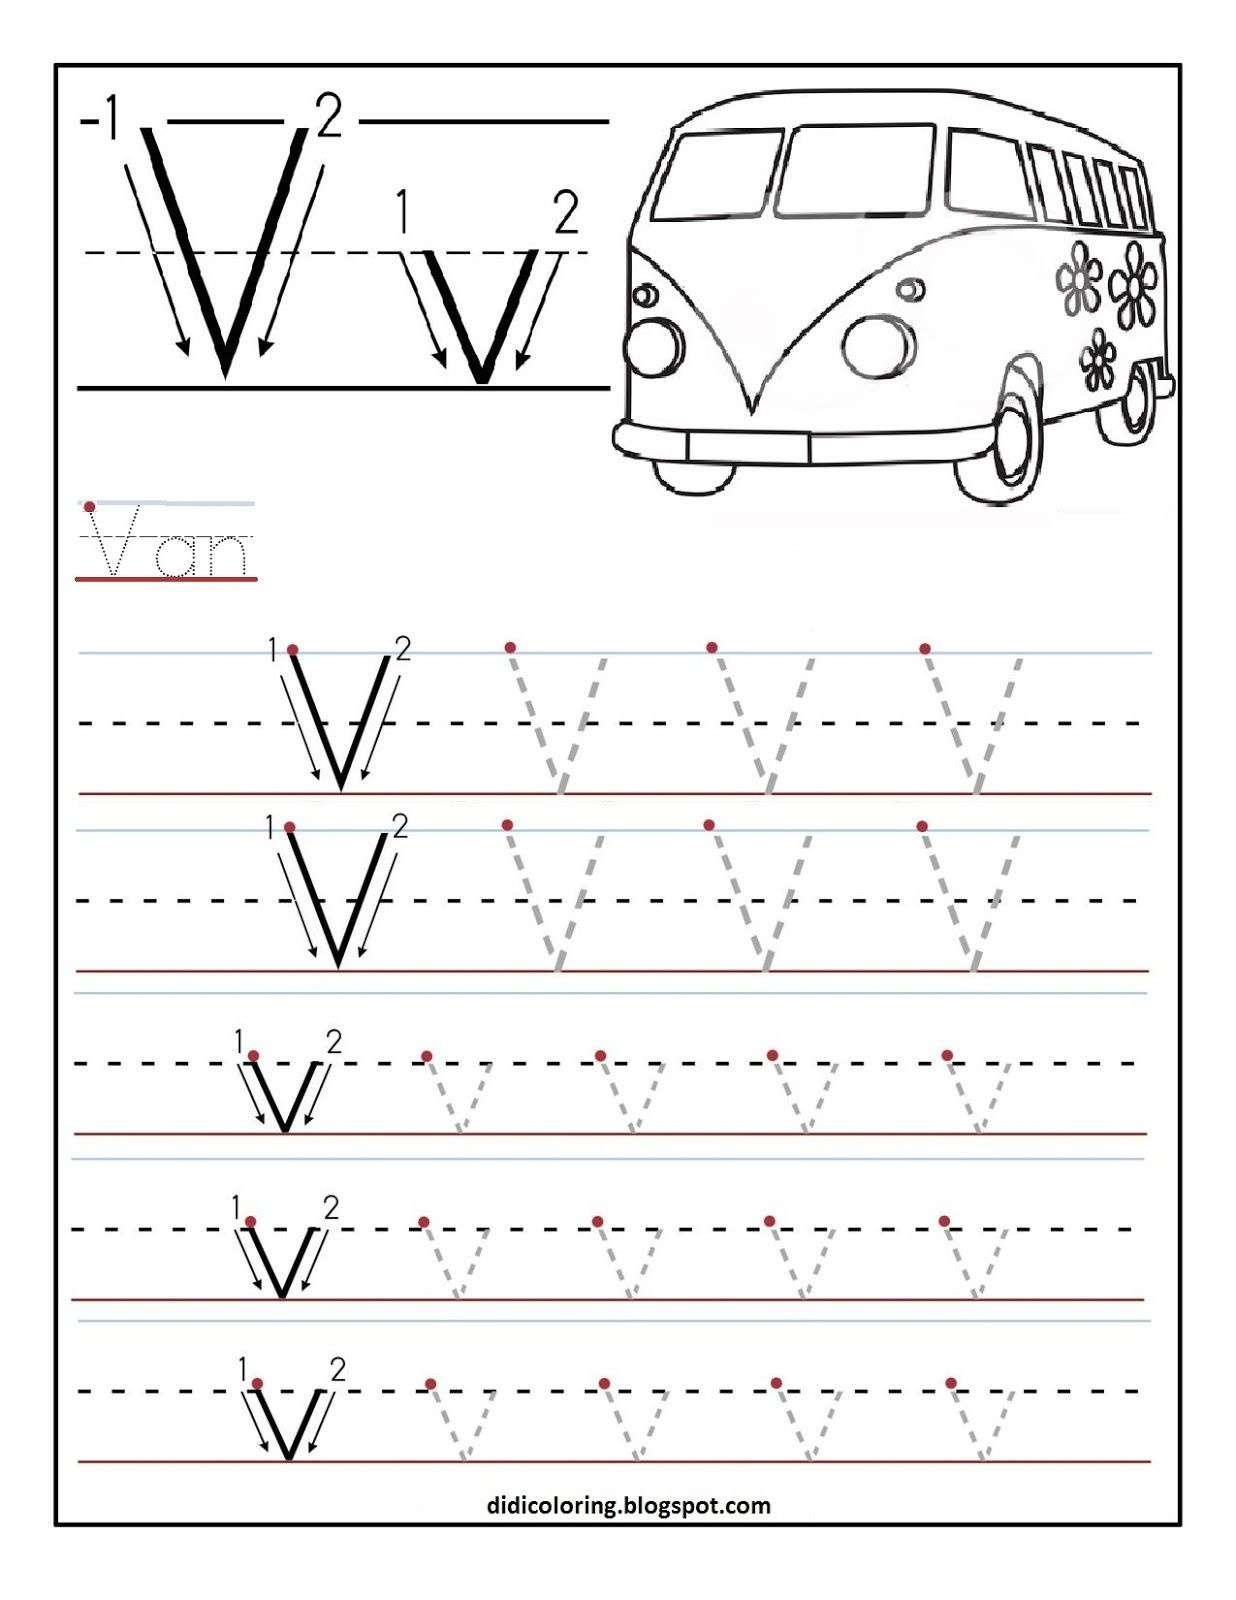 Free Printable Worksheet Letter V For Your Child To Learn And Write - Learning To Write Letters Free Printables